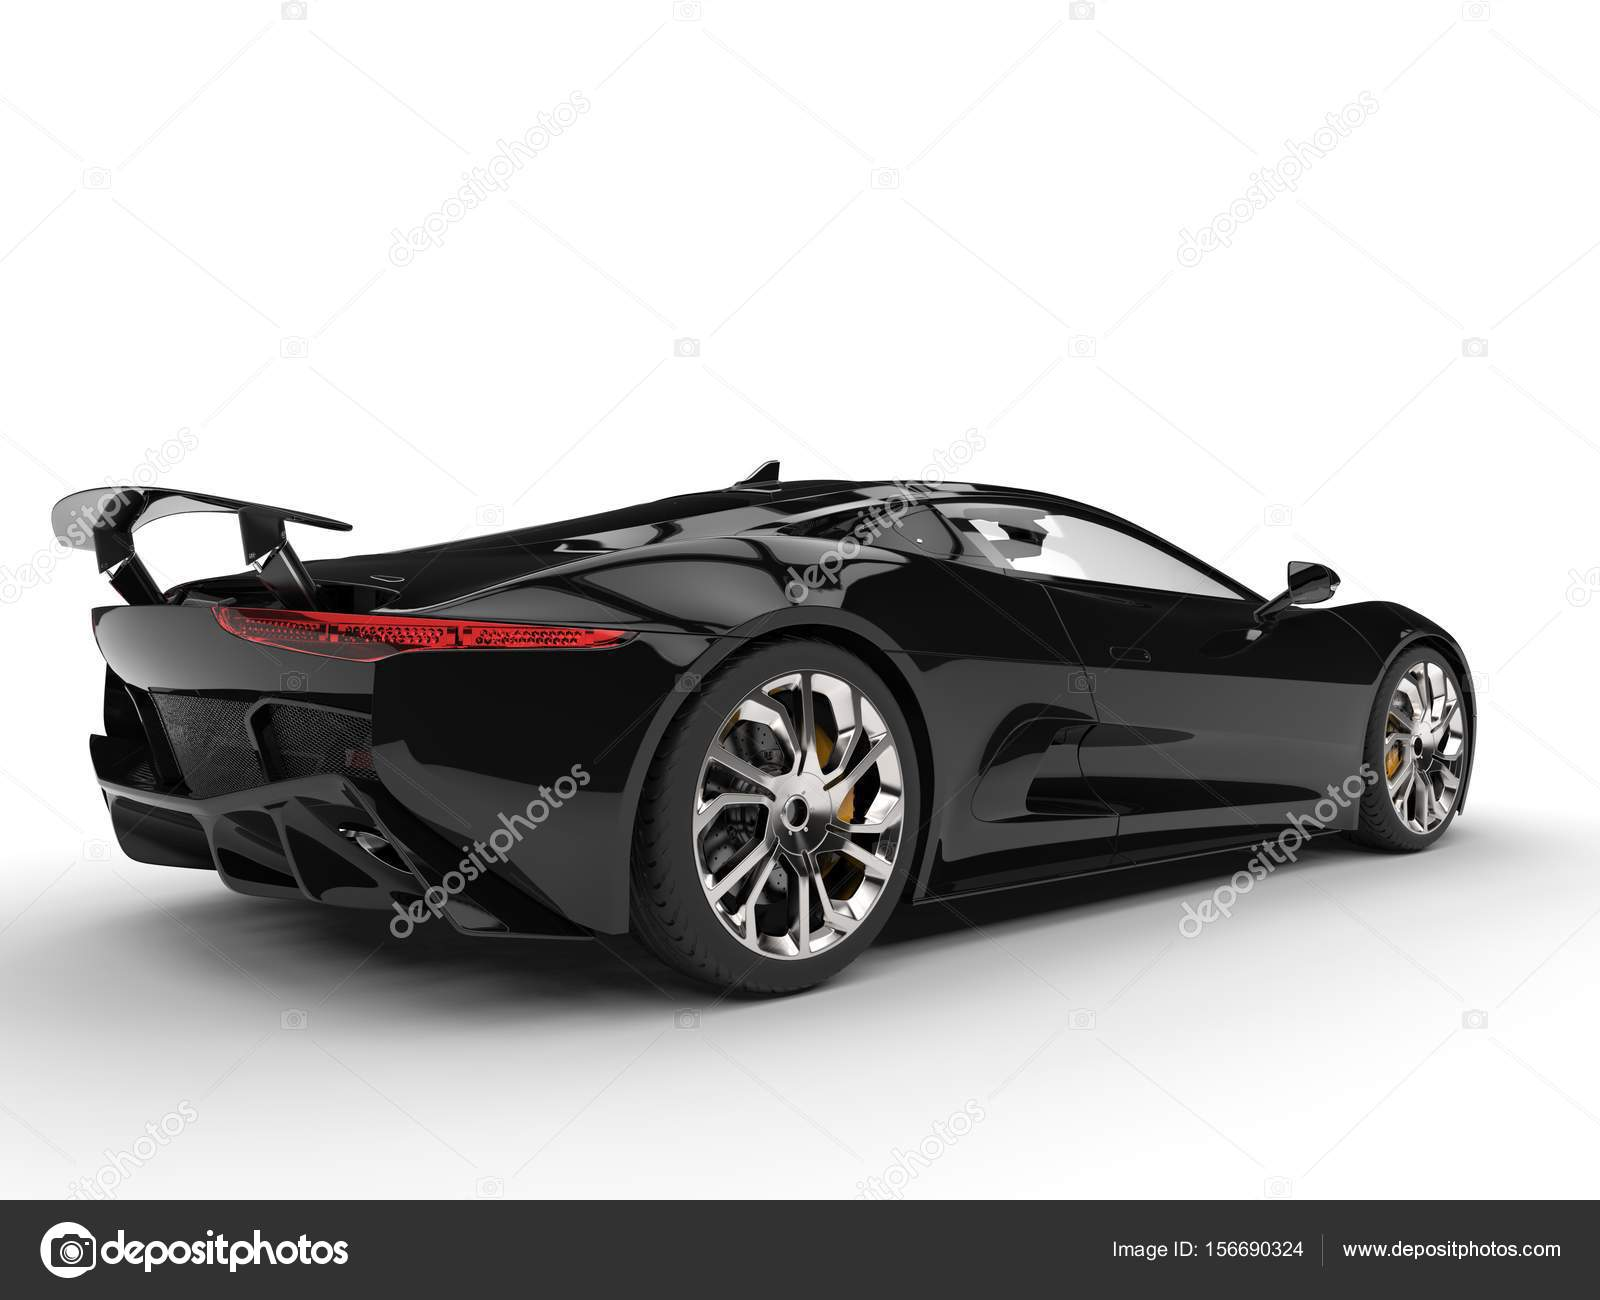 Great Jet Black Modern Elegant Super Car Stock Photo C Trimitrius